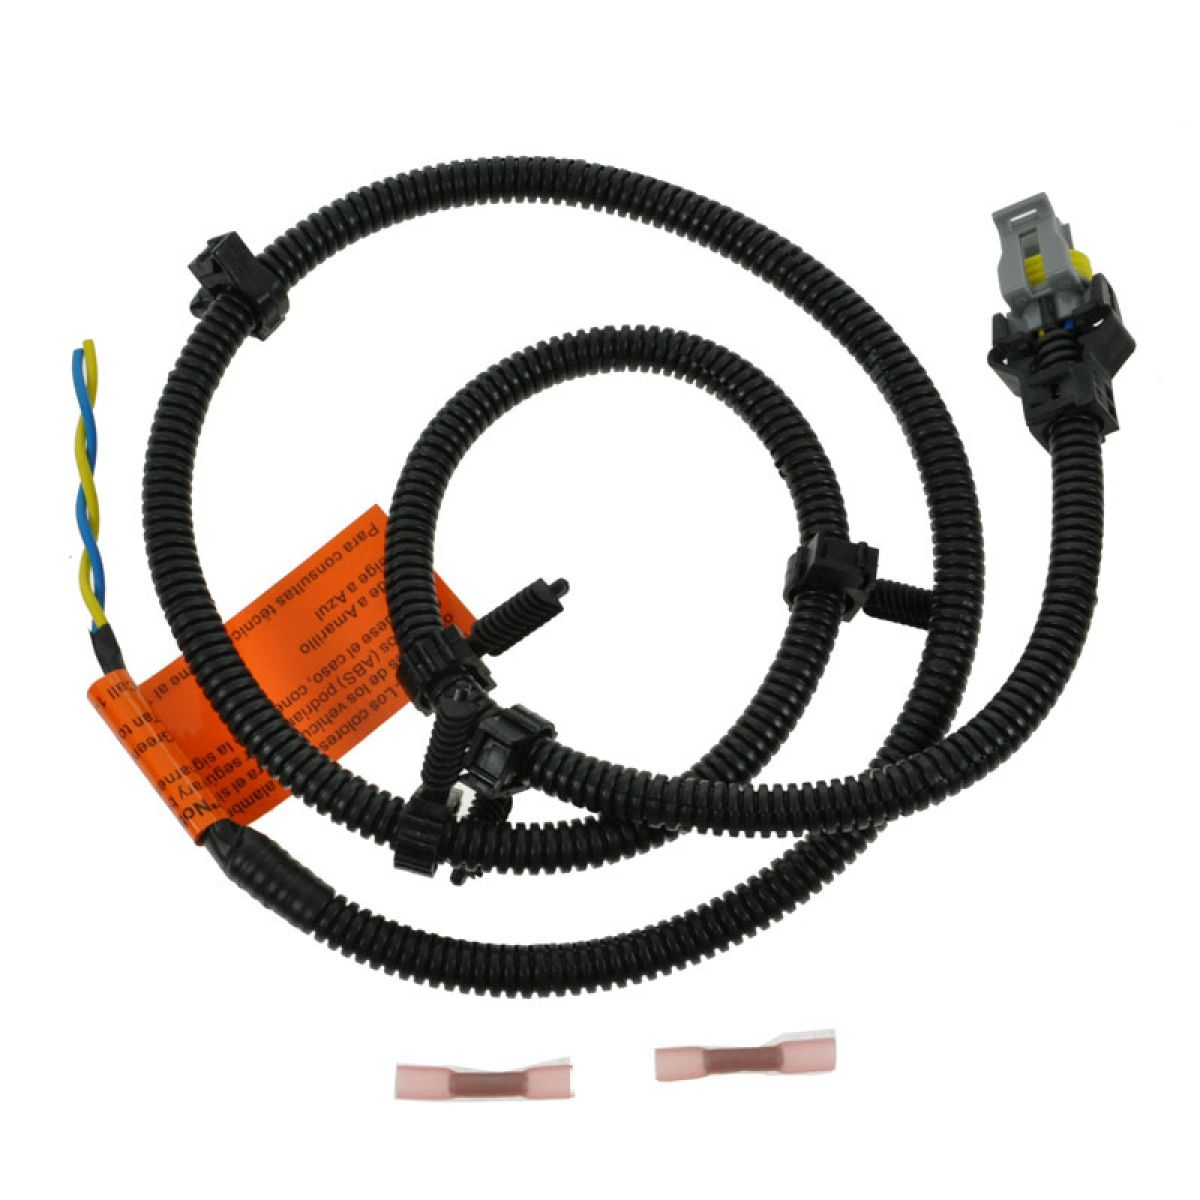 AM 572462664 dorman speed sensor harness with plug & pigtail abs wire wheel  at crackthecode.co